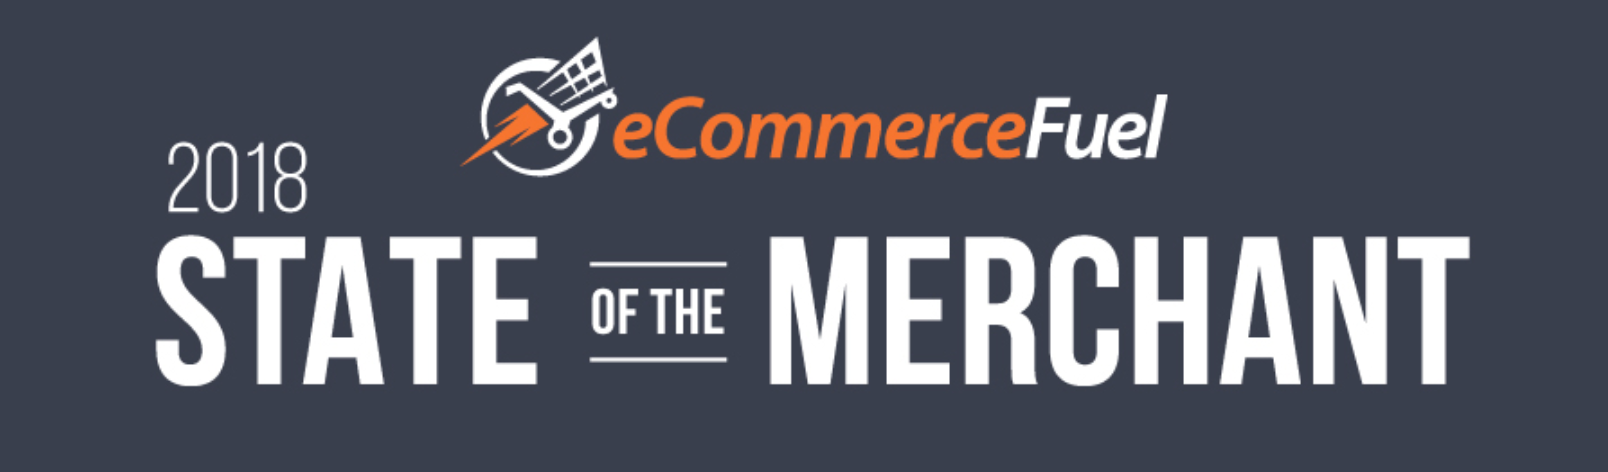 2018 State of the Merchant Report | eCommerceFuel